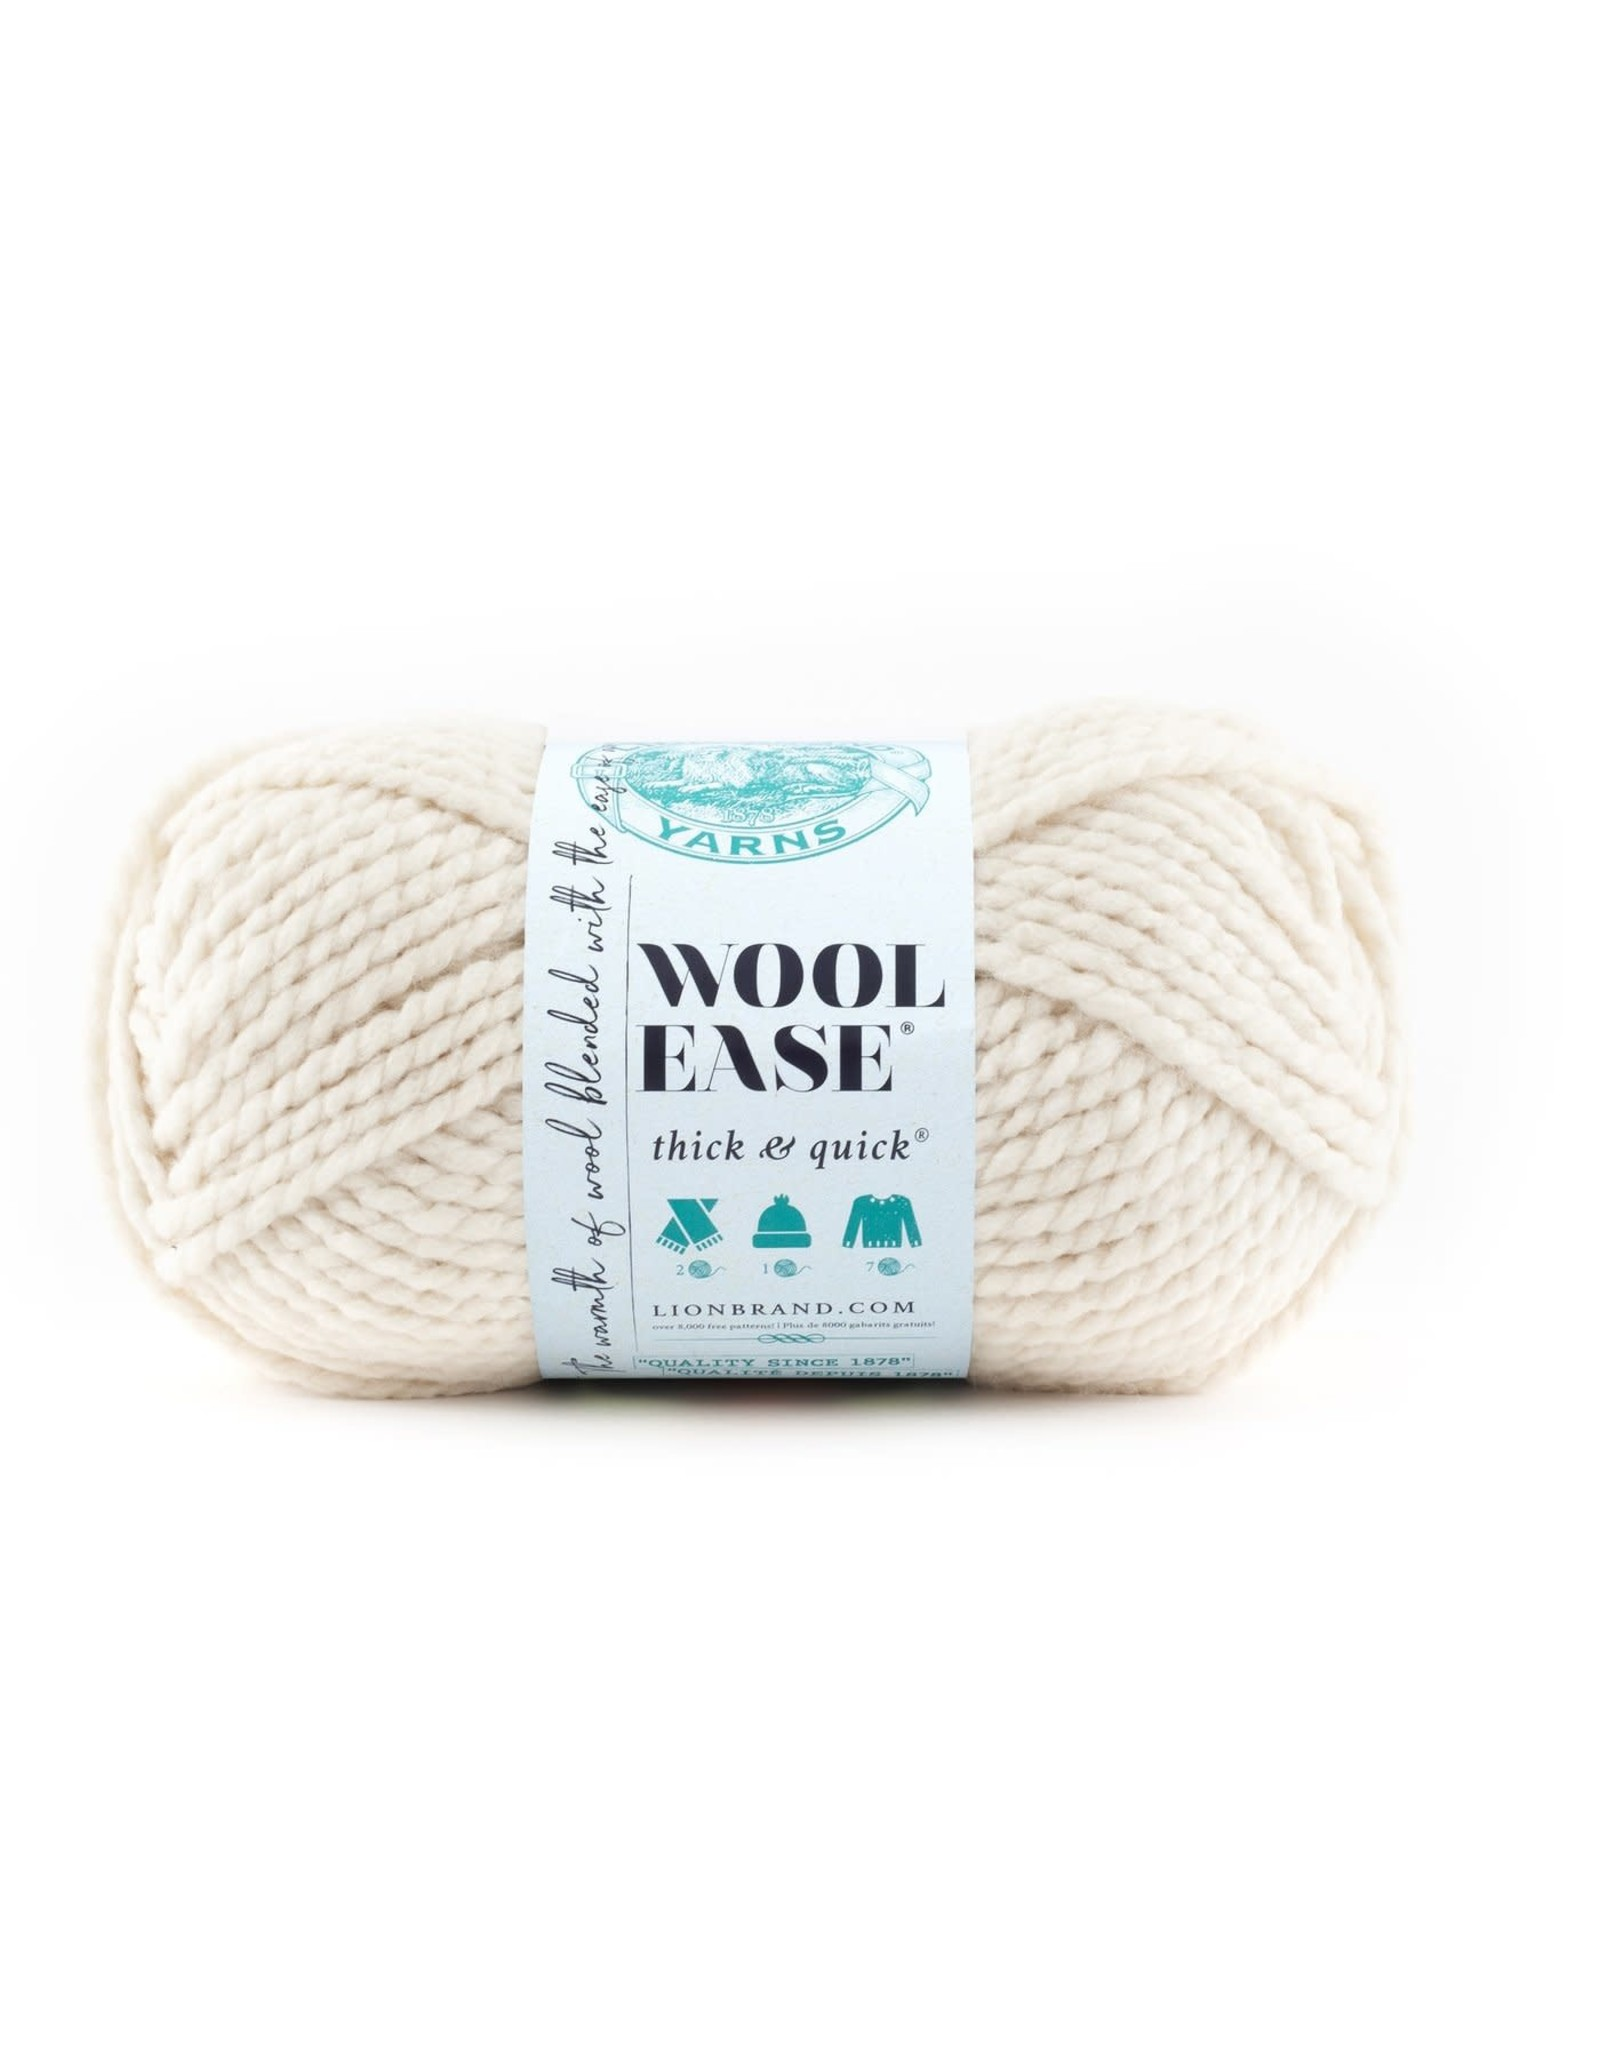 Fisherman - Wool Ease Thick and Quick - Lion Brand